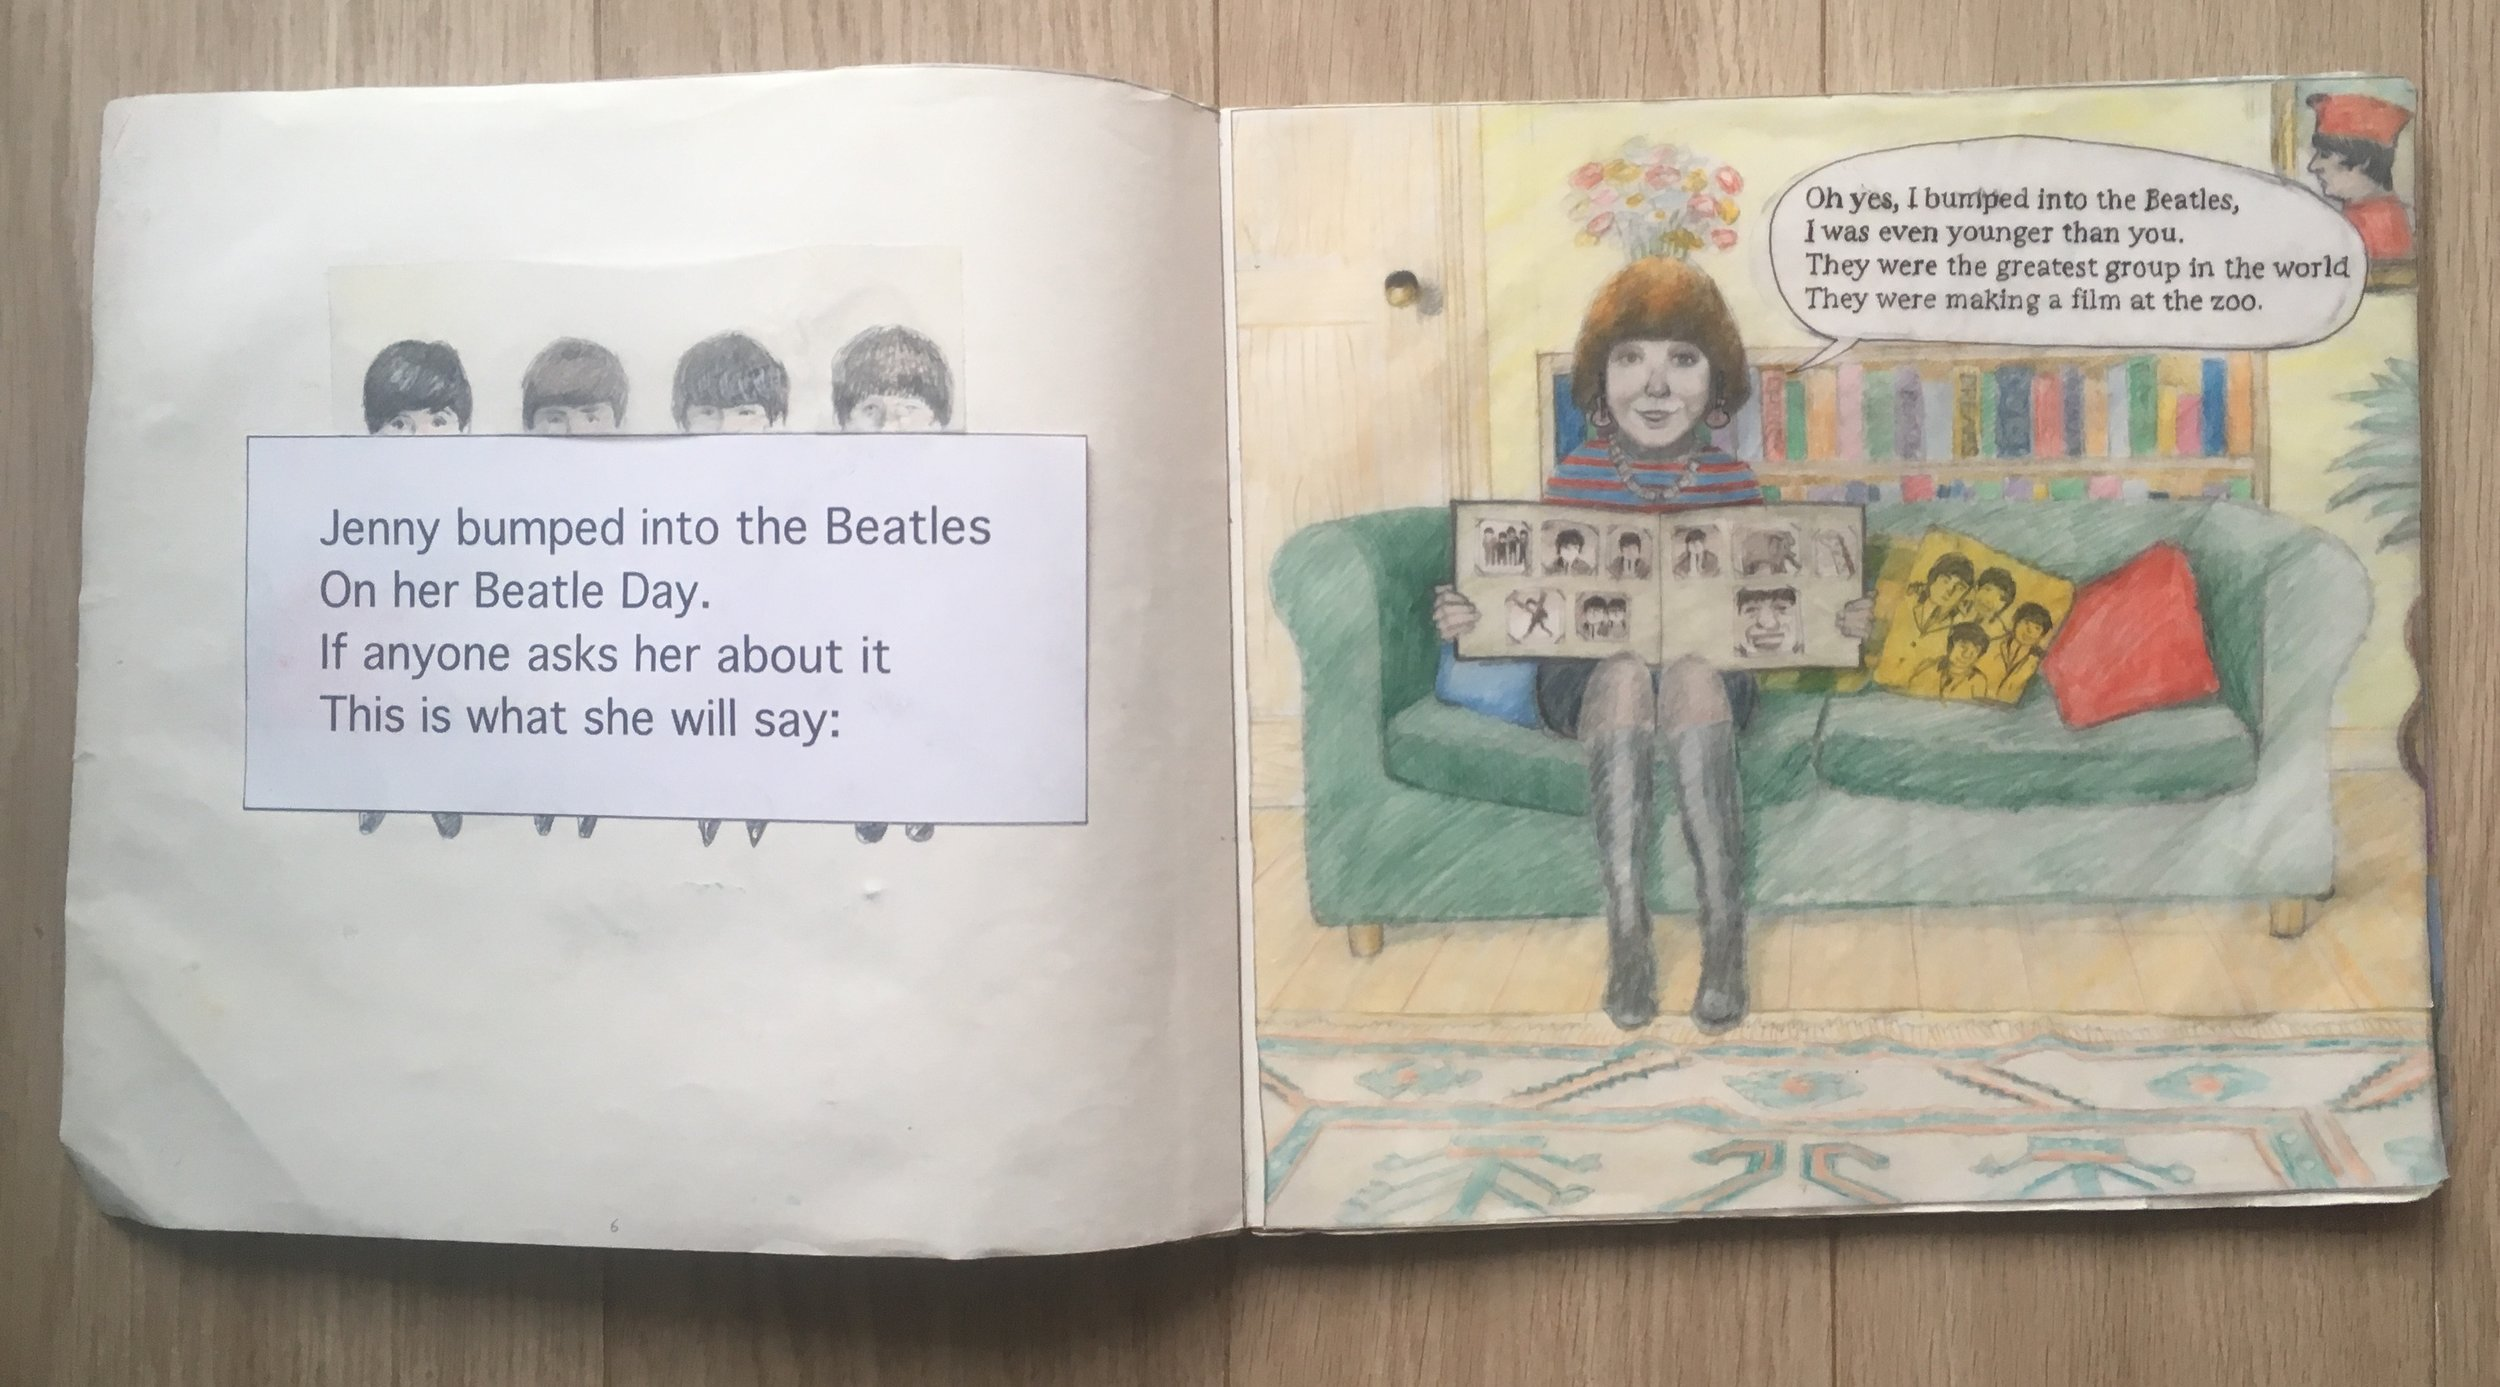 The Beatles Book - While many of Anthony's dummies eventually grow into published books, some never make it. This is a good example of such a book. The images show a selection of pages from the dummy of a story that was never published due to copyright reasons. (Text by Adrian Mitchell)